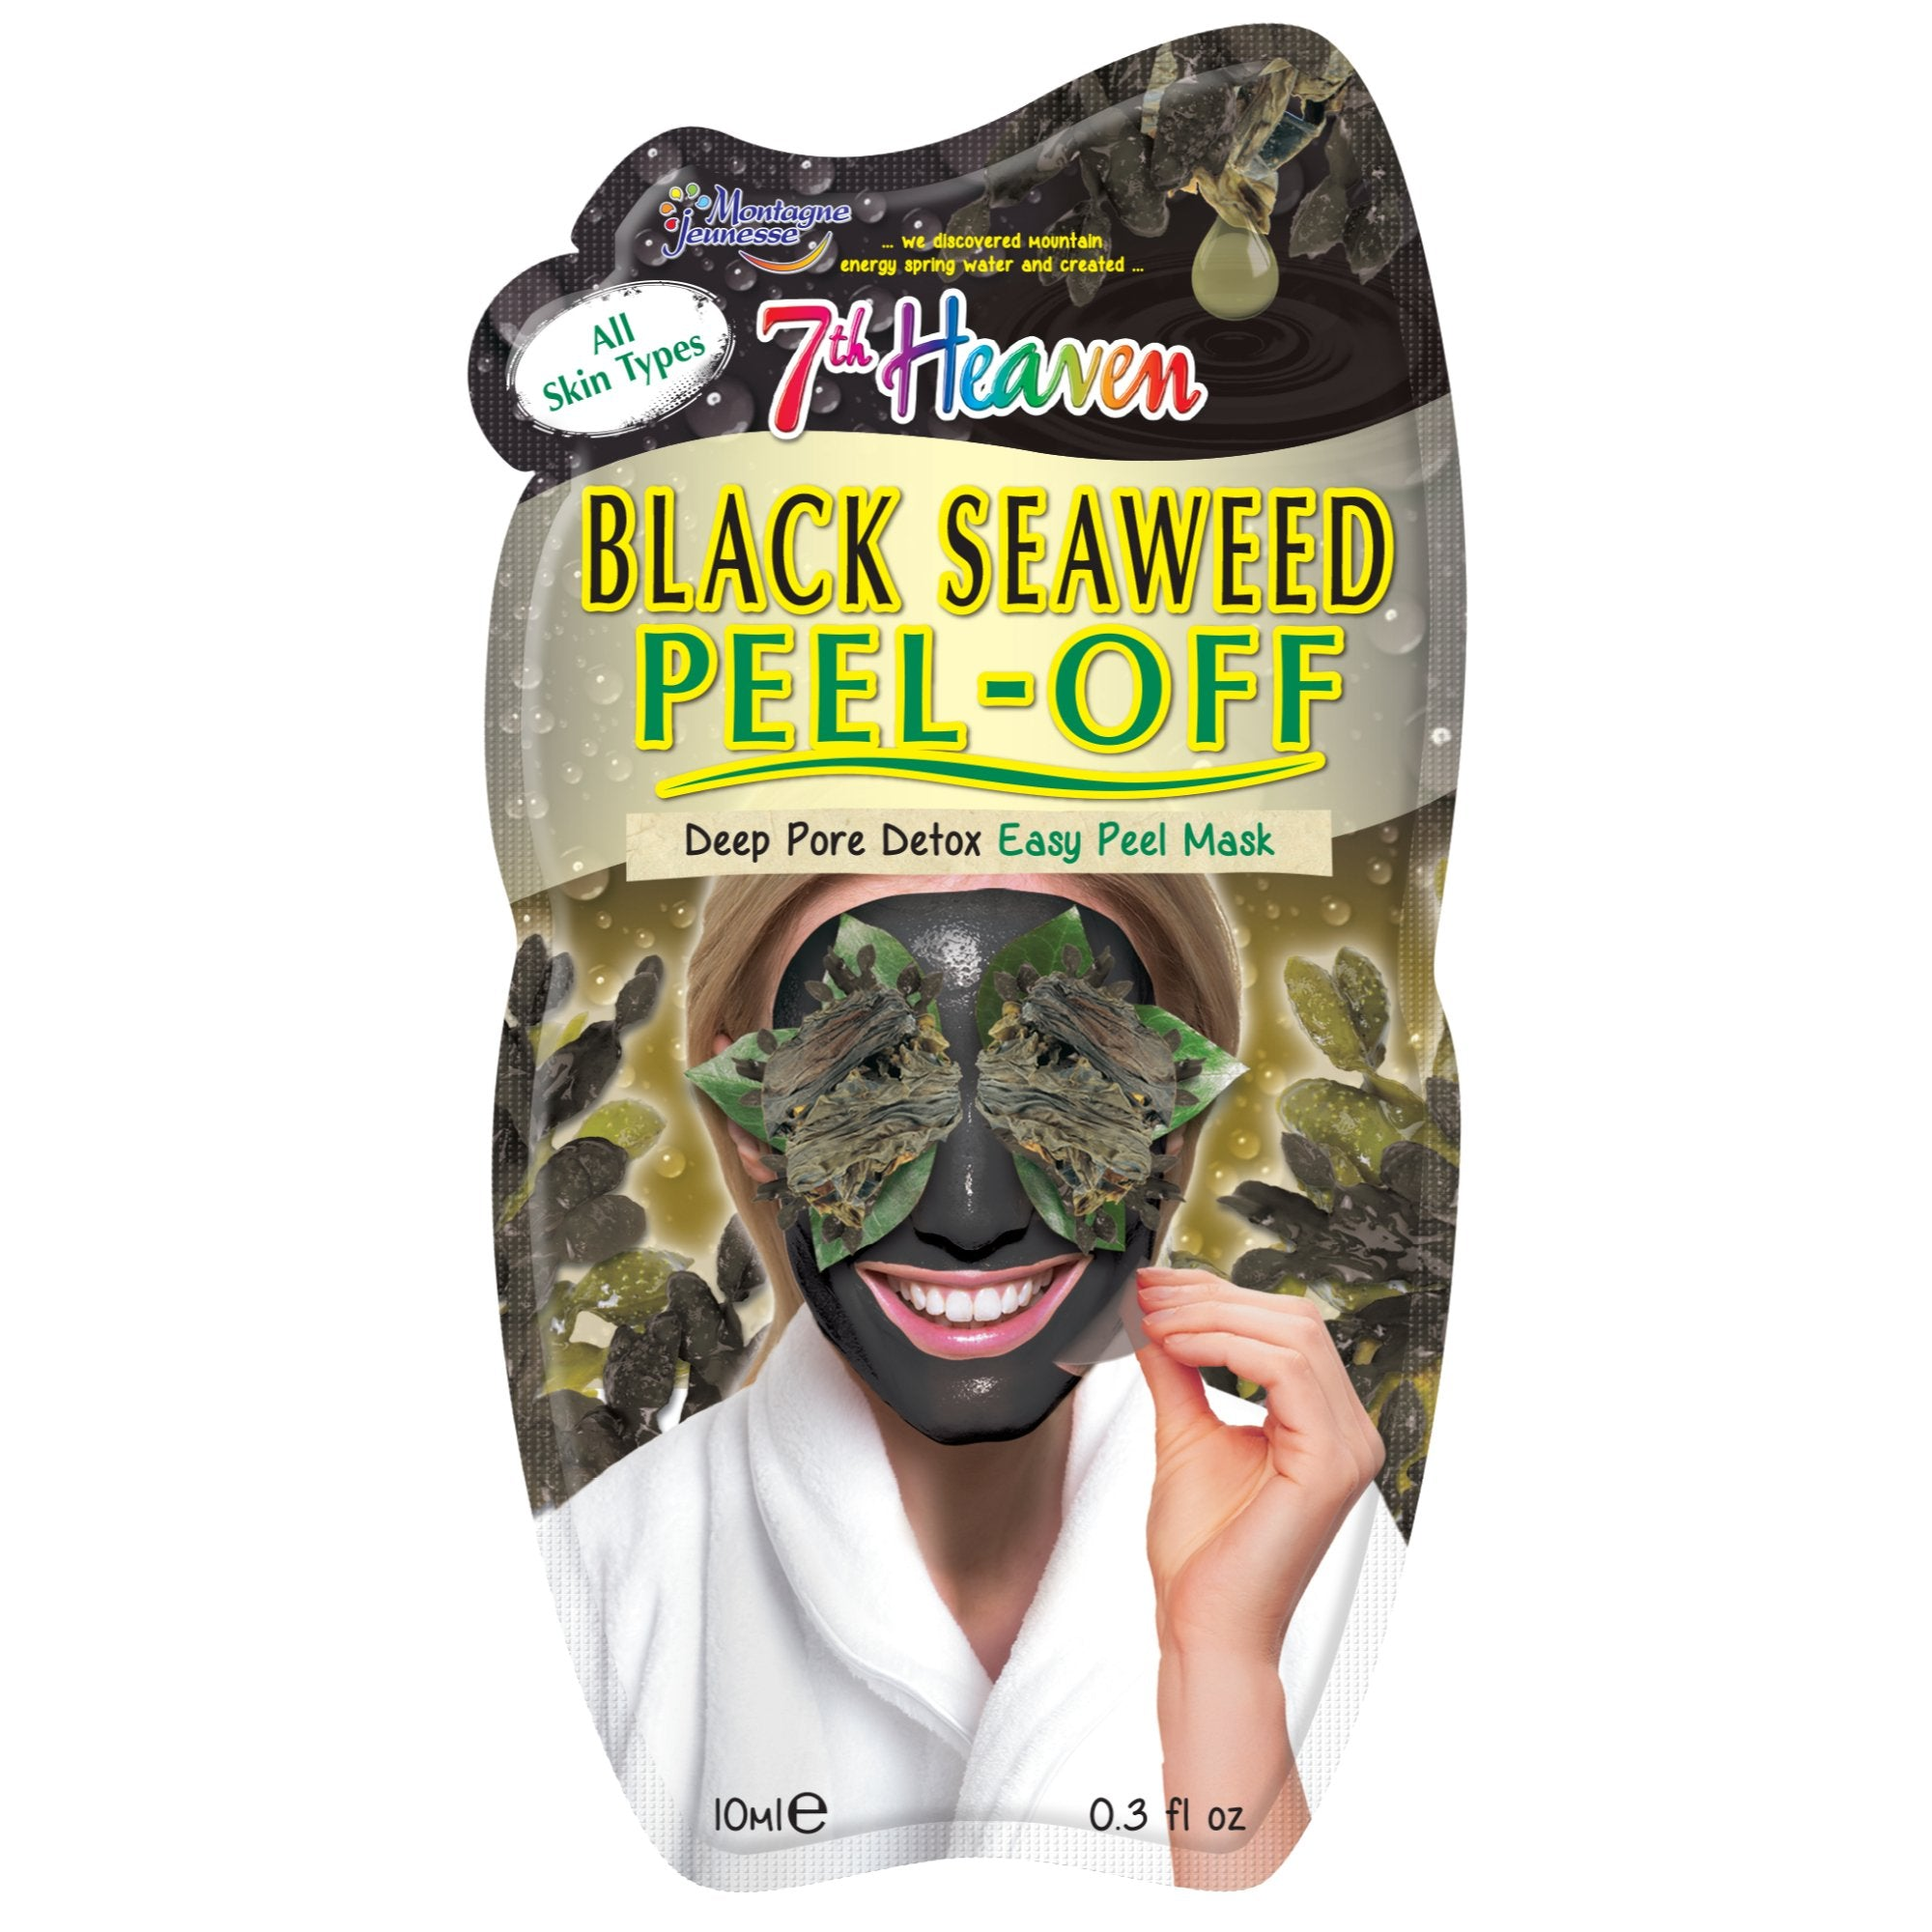 Black Seaweed Peel-Off Mask